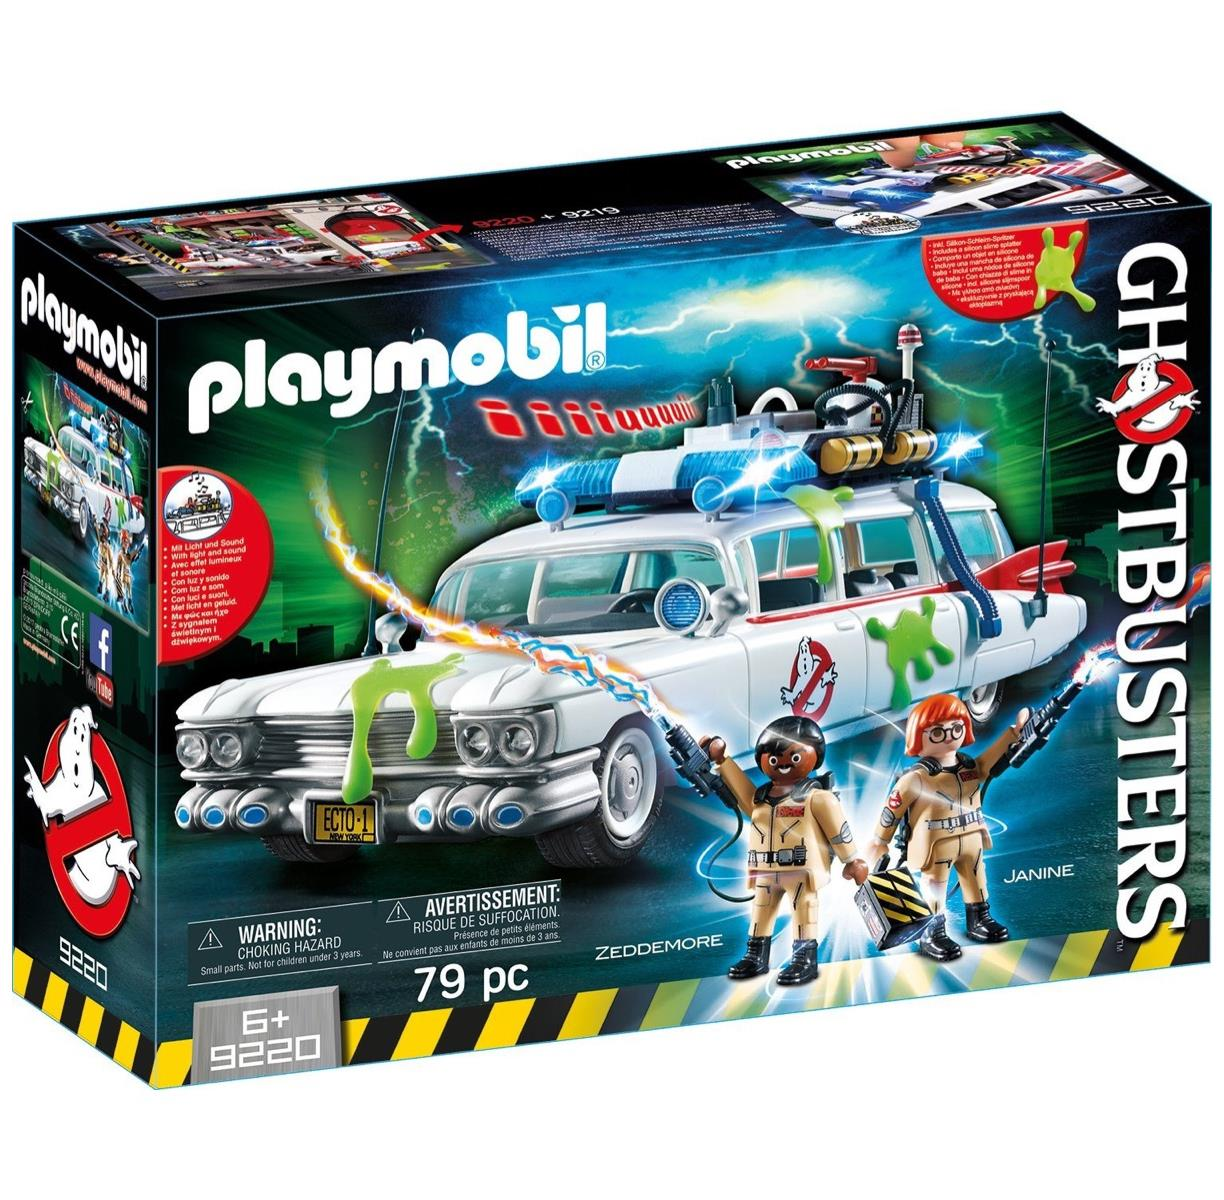 Playmobil 9220 - Ghostbusters Ecto-1